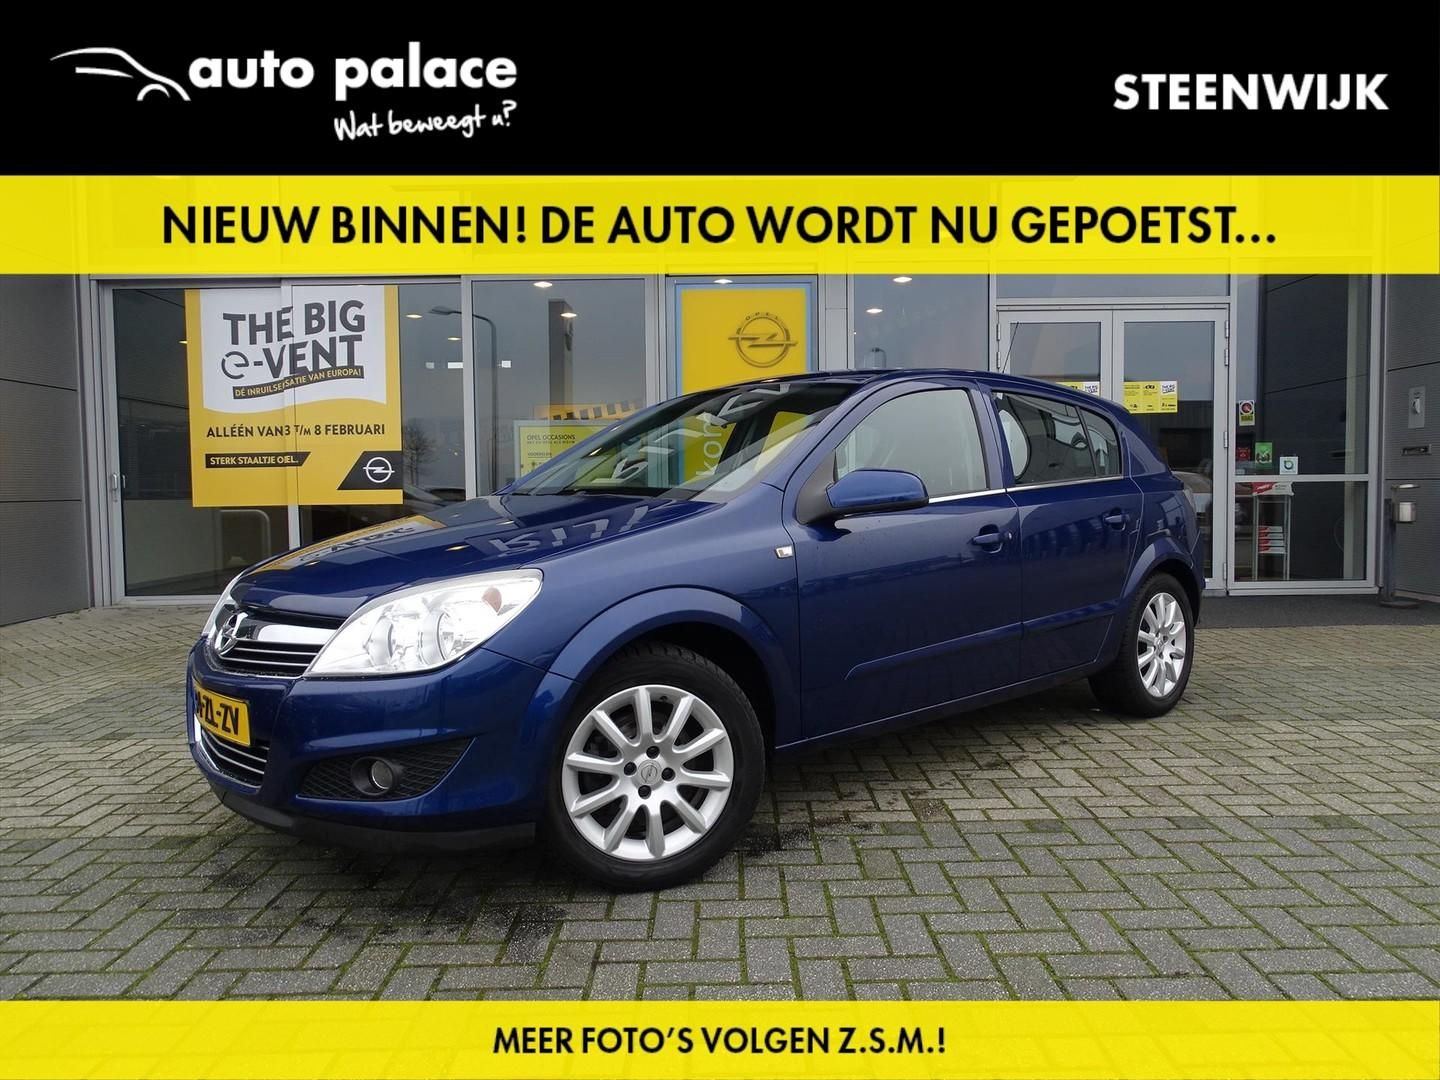 """Opel Astra Edition 1.4 90 pk - 5drs - trekhaak - airco - cruise control - comfort seat pack - 16"""" lm - nette auto!"""